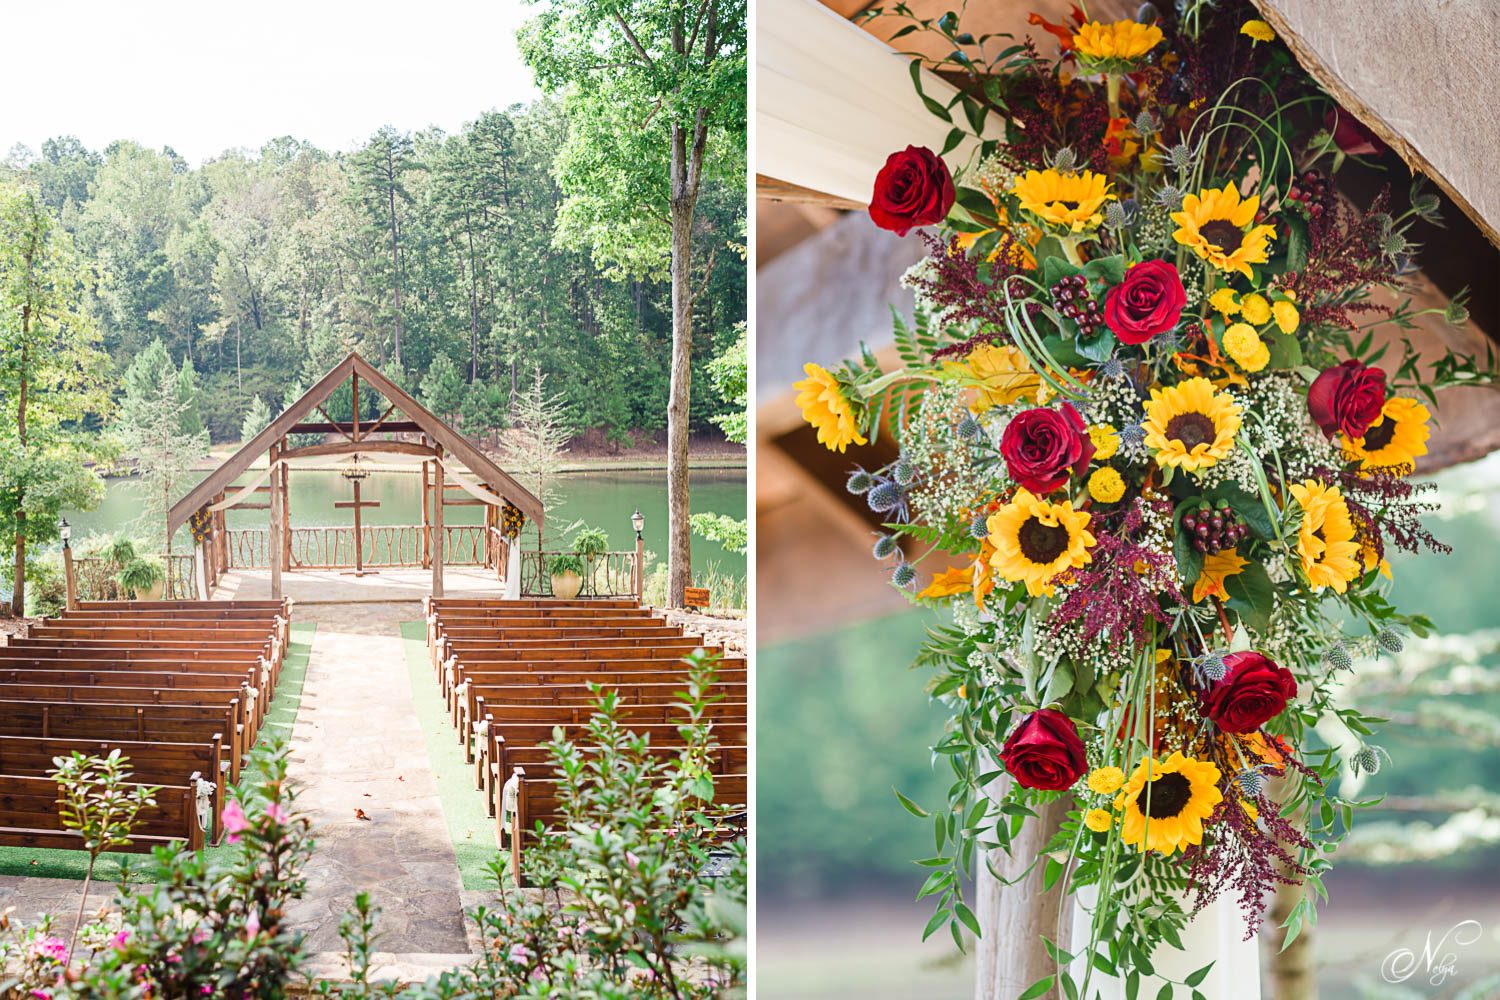 The outdoor ceremony area at Indigo falls. And bold fall colored roses and sunflowers